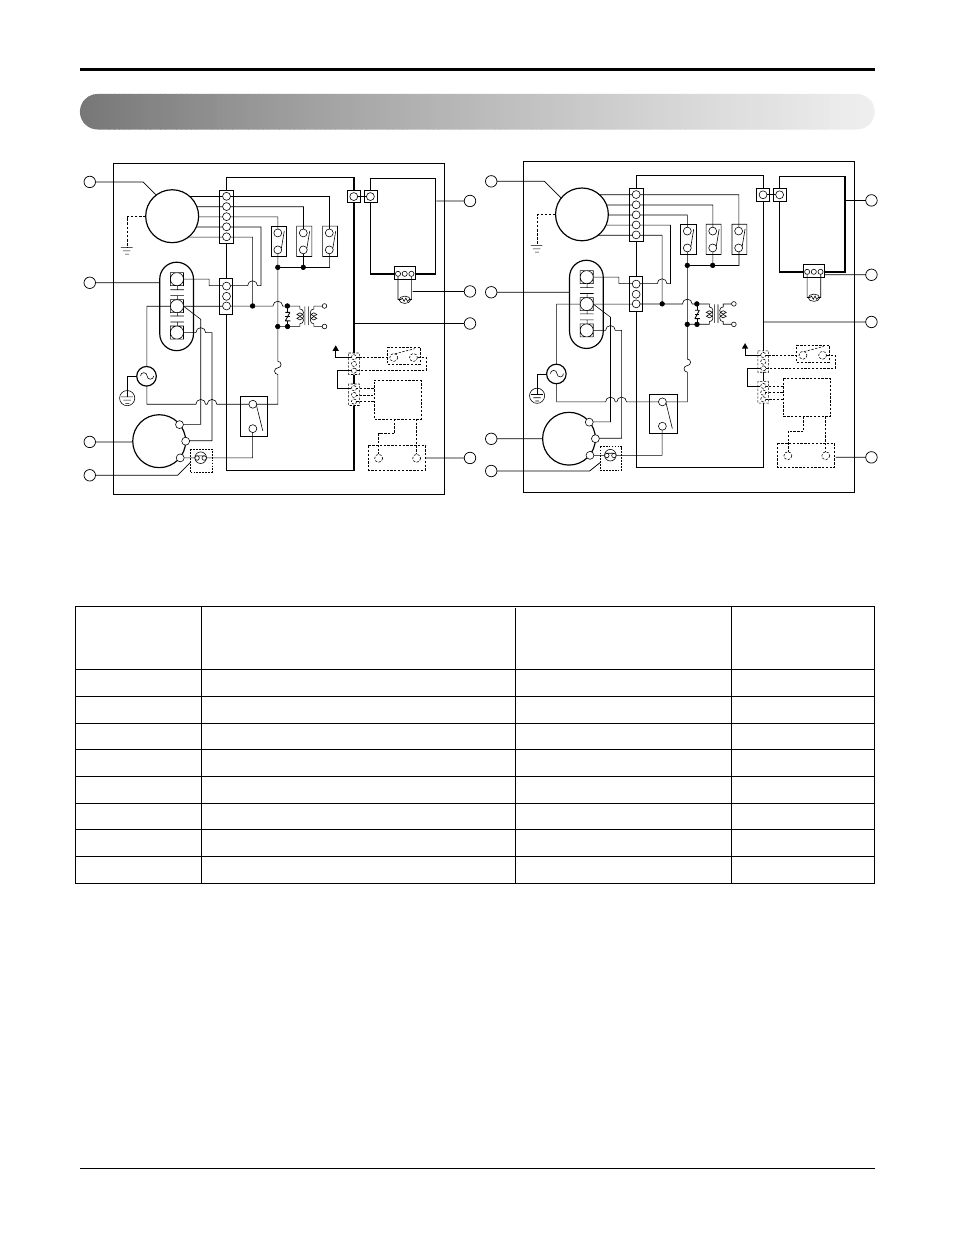 Wiring diagram, 20 room air conditioner schematic diagram | LG L1804R User  Manual | Page